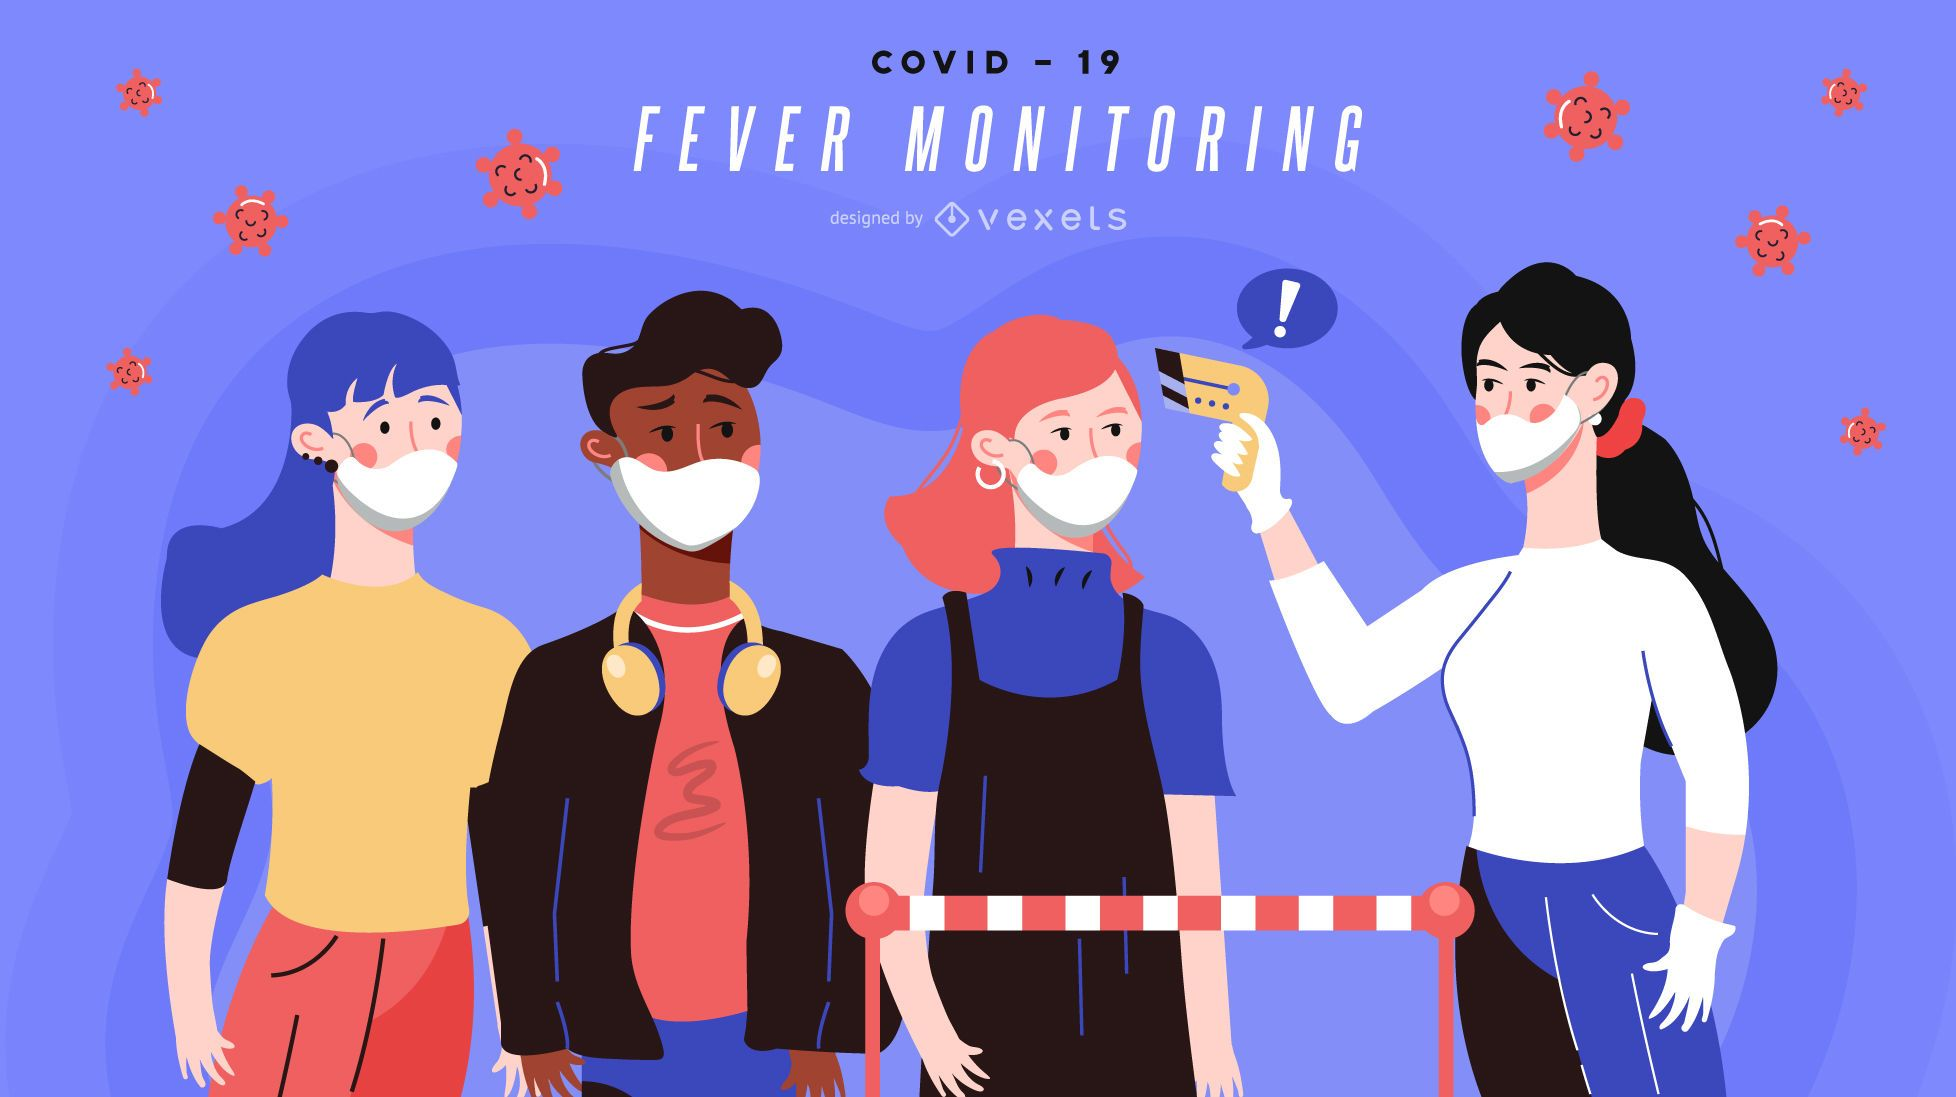 Covid-19 fever monitoring banner